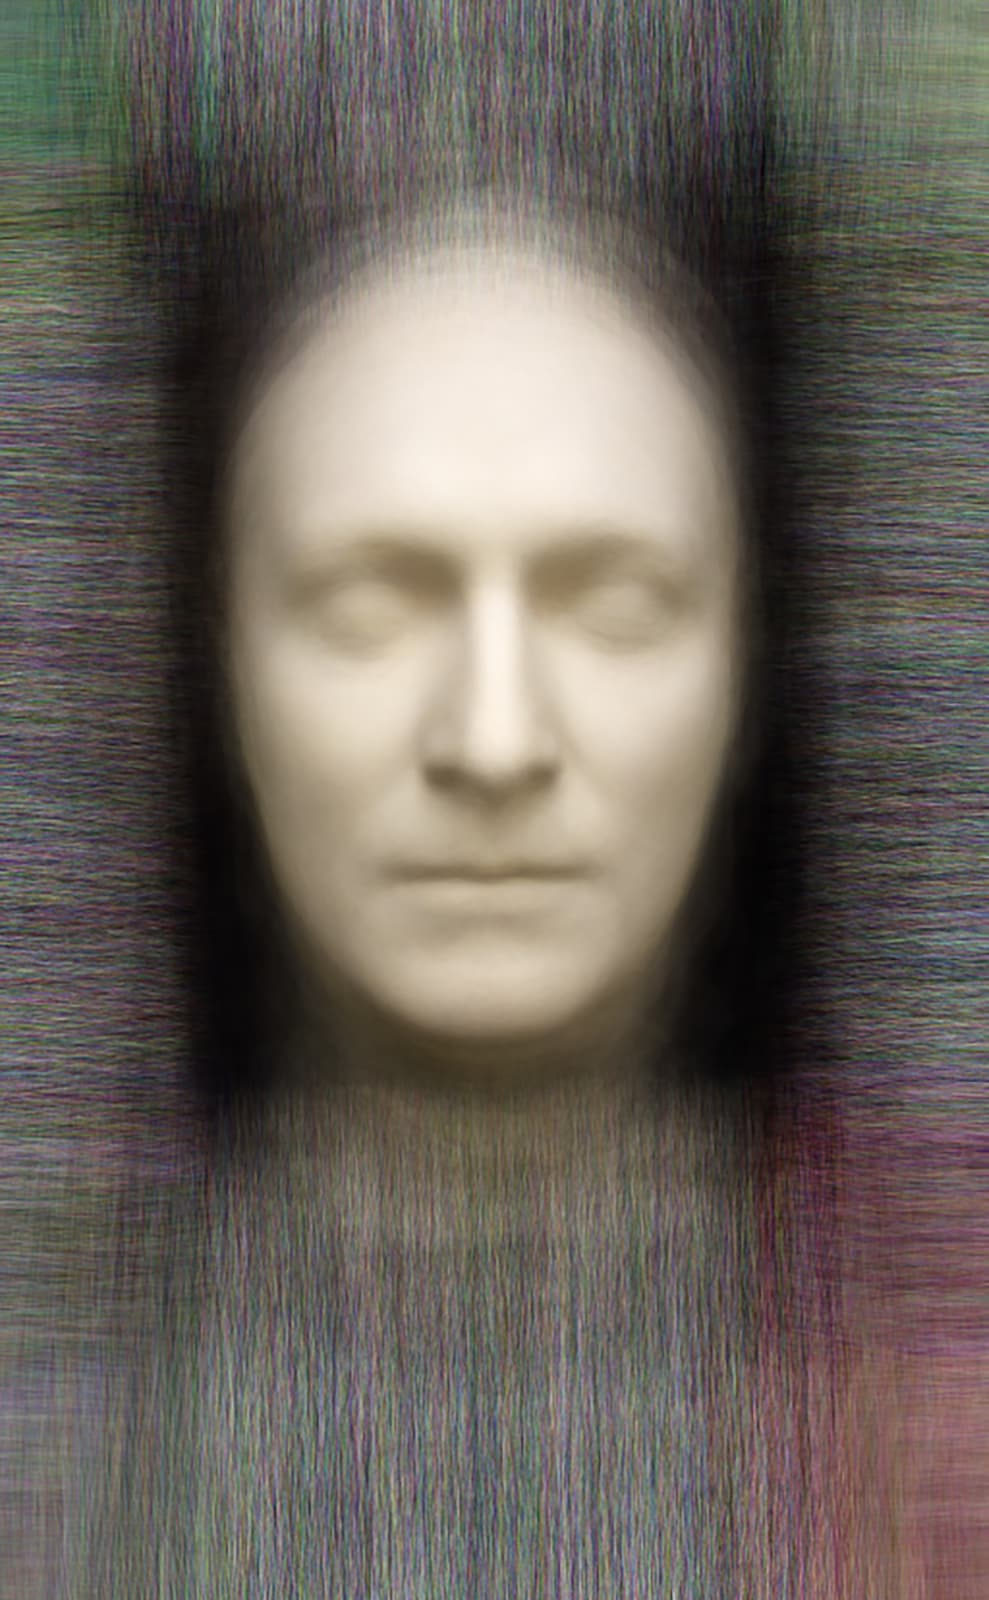 Death - Post-mortem masks of notable men, 2014 Chromogenic Colour Print, Electroluminescent Paper, Half-silvered Acrylic 23 3/5 × 16 1/2 in 60 × 42 cm